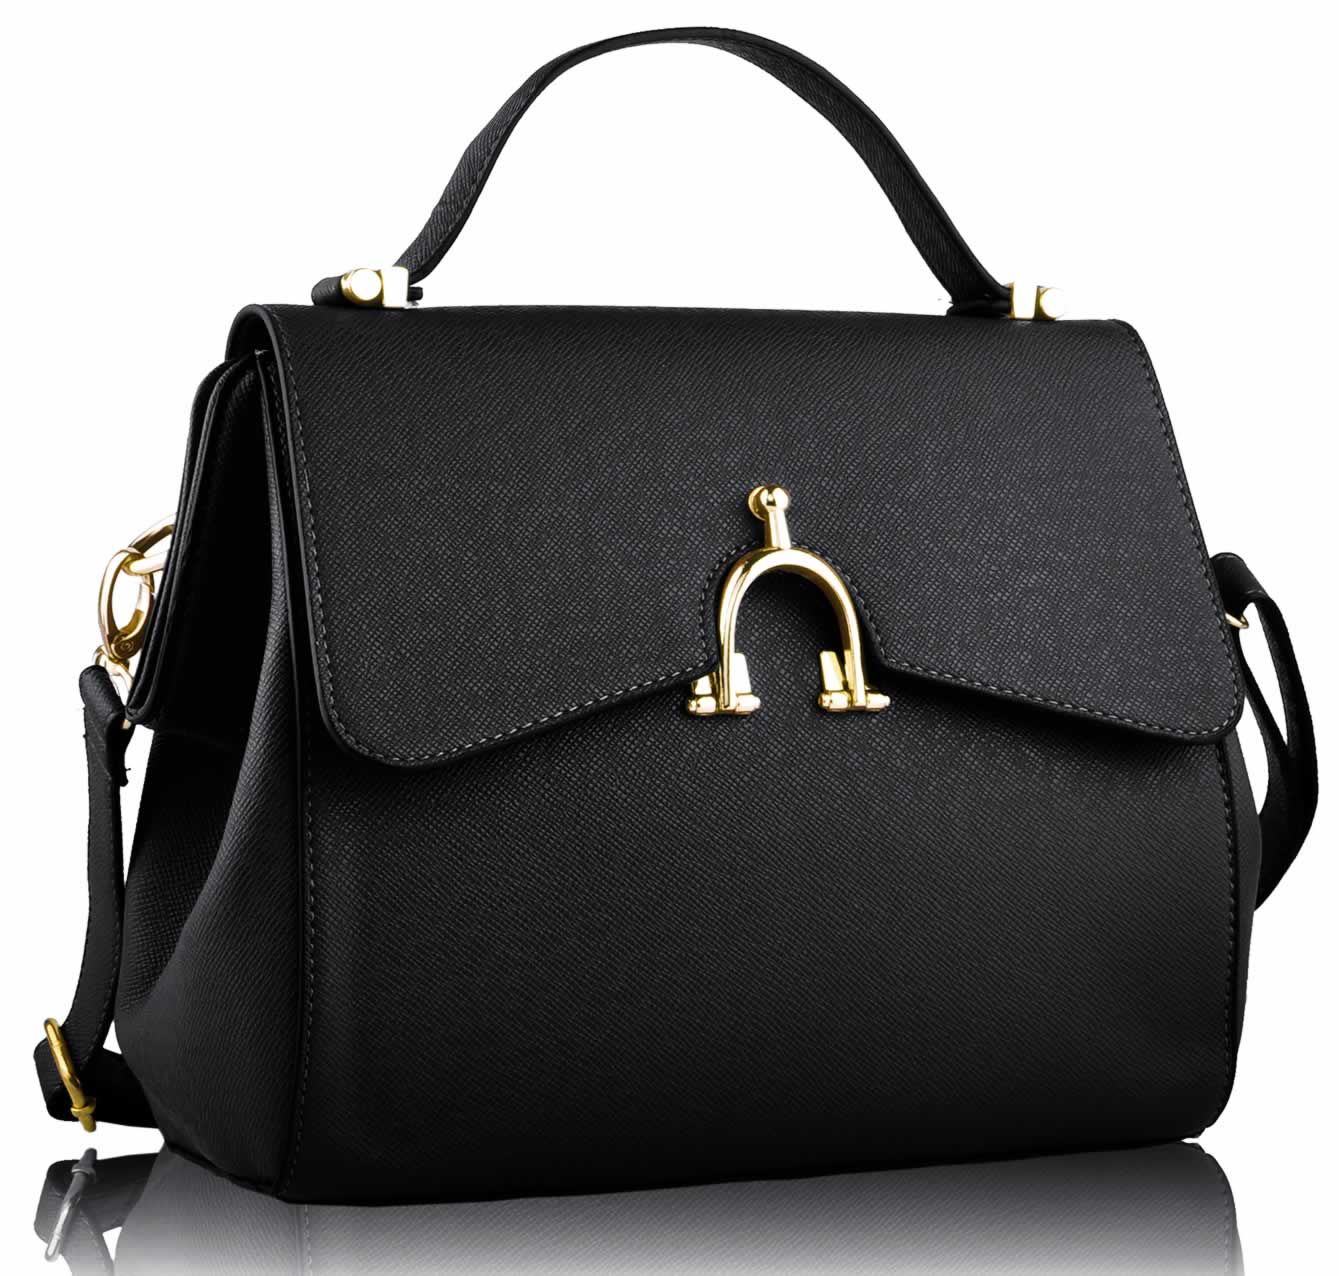 Tignanello Main Street Satchel Shoulder Bag, Black, One Size. This satchel is done in our pebble leather. The outside features two handles, front slip pocket and a generous zip top closure. Inside features two front slip pockets and a back wall zipper compartment. more.